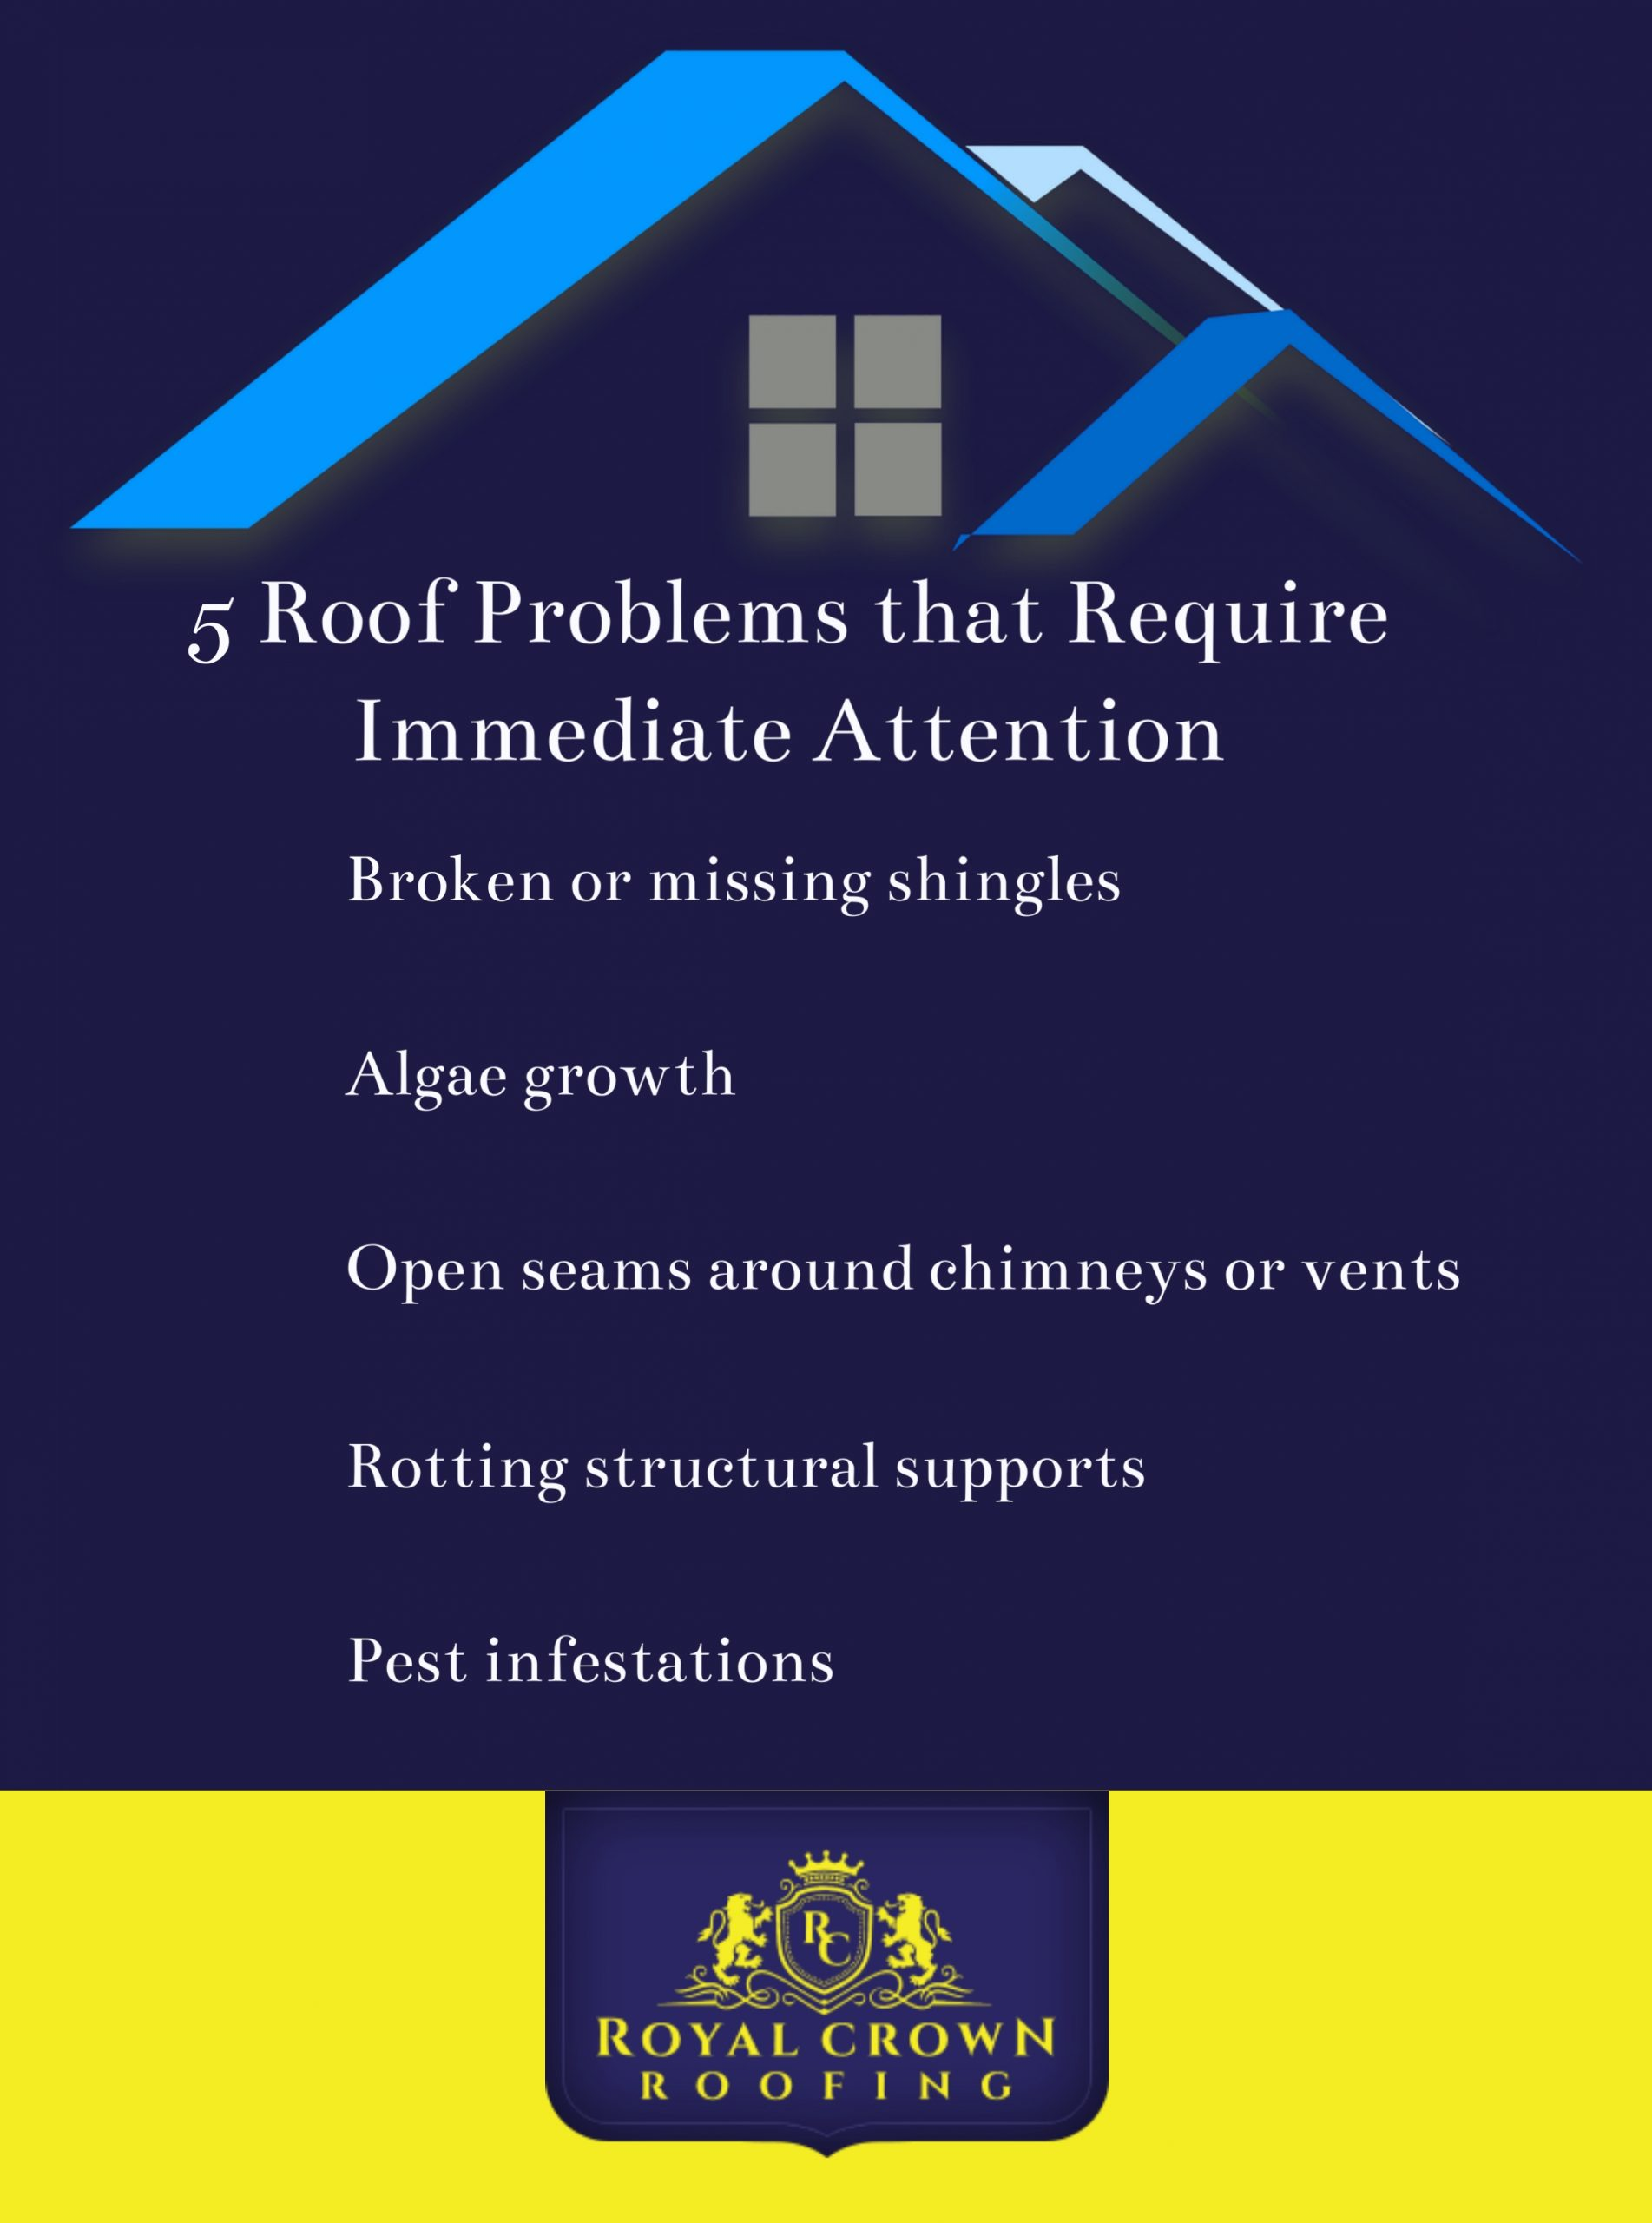 5 Roof Problems that Require Immediate Attention, Royal Crown Roofing, Conroe, TX